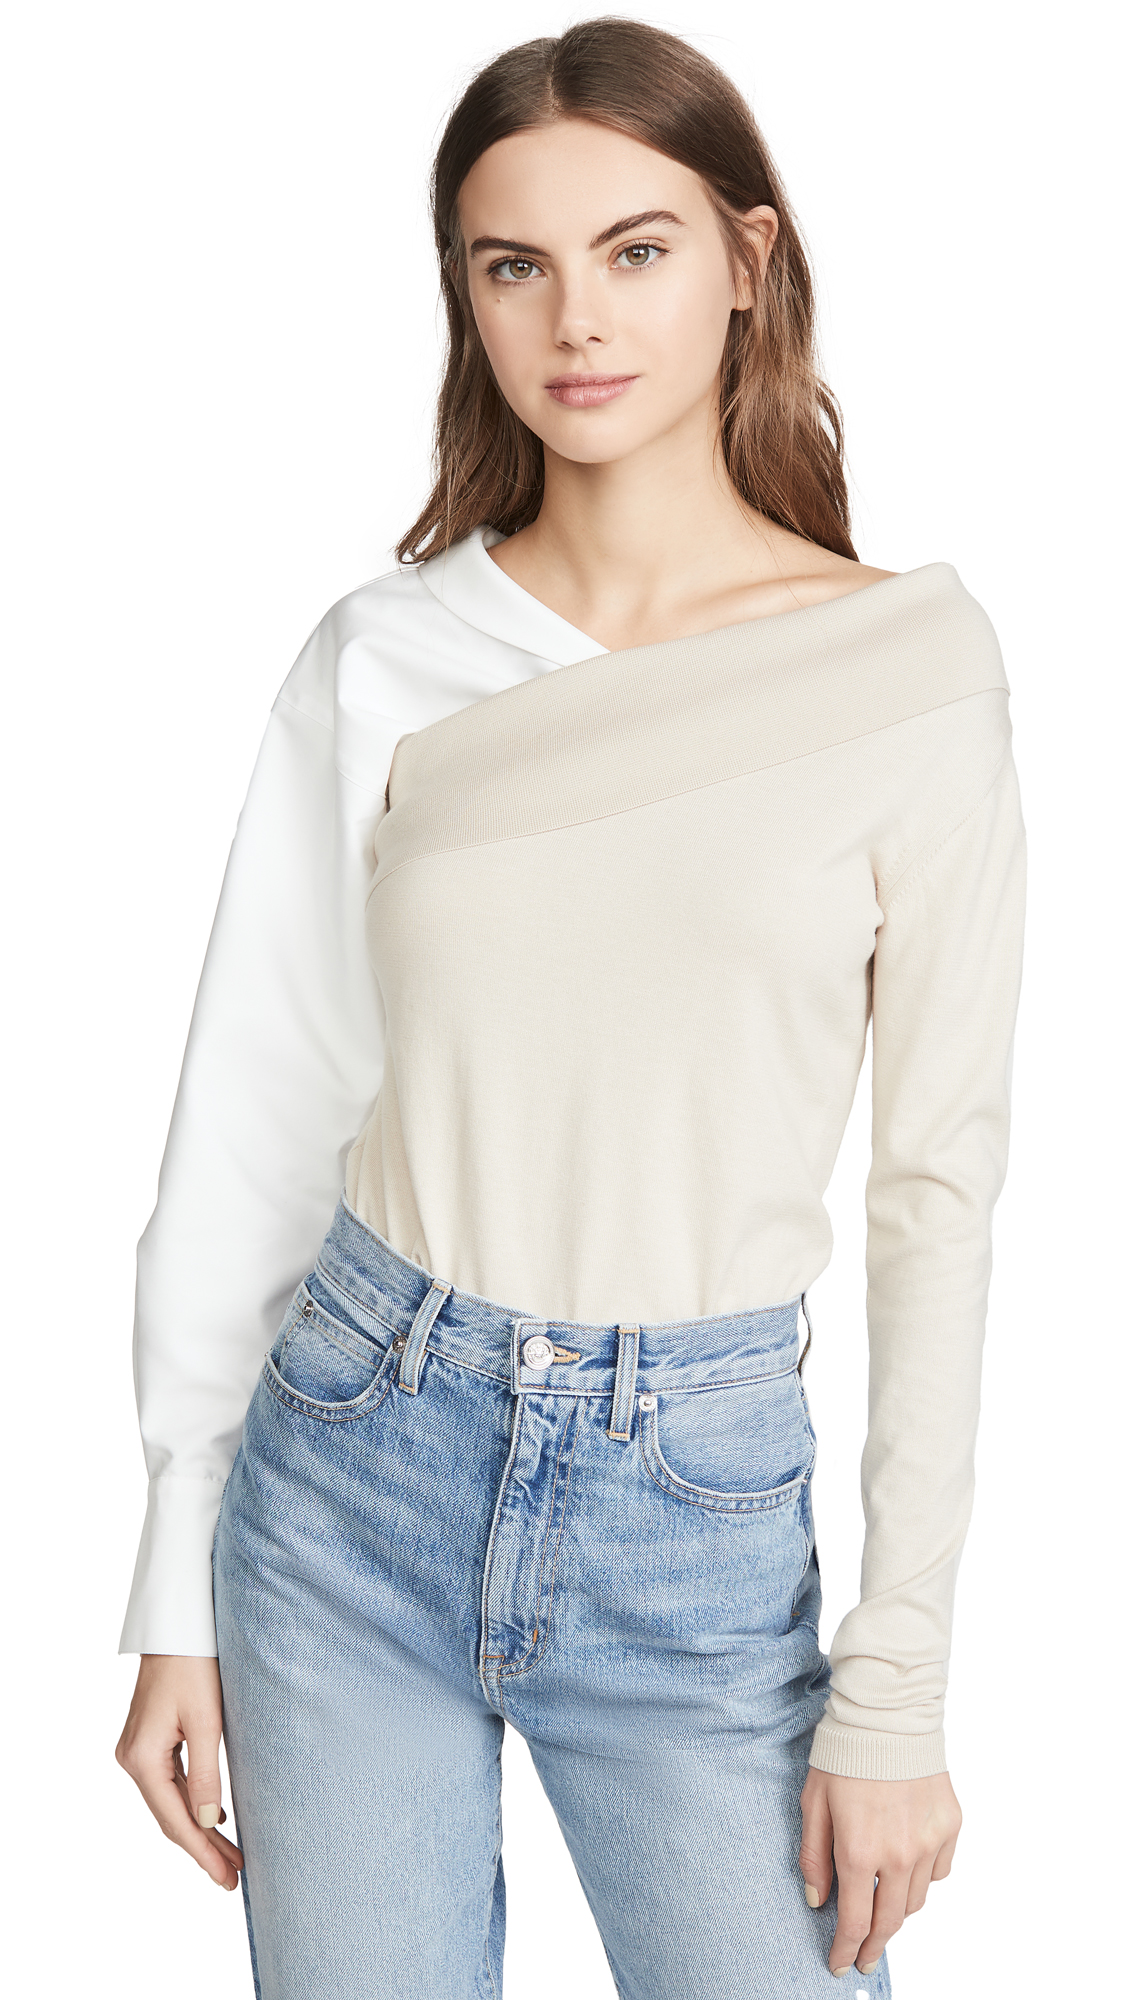 Adeam Two Way Knit Top – 50% Off Sale